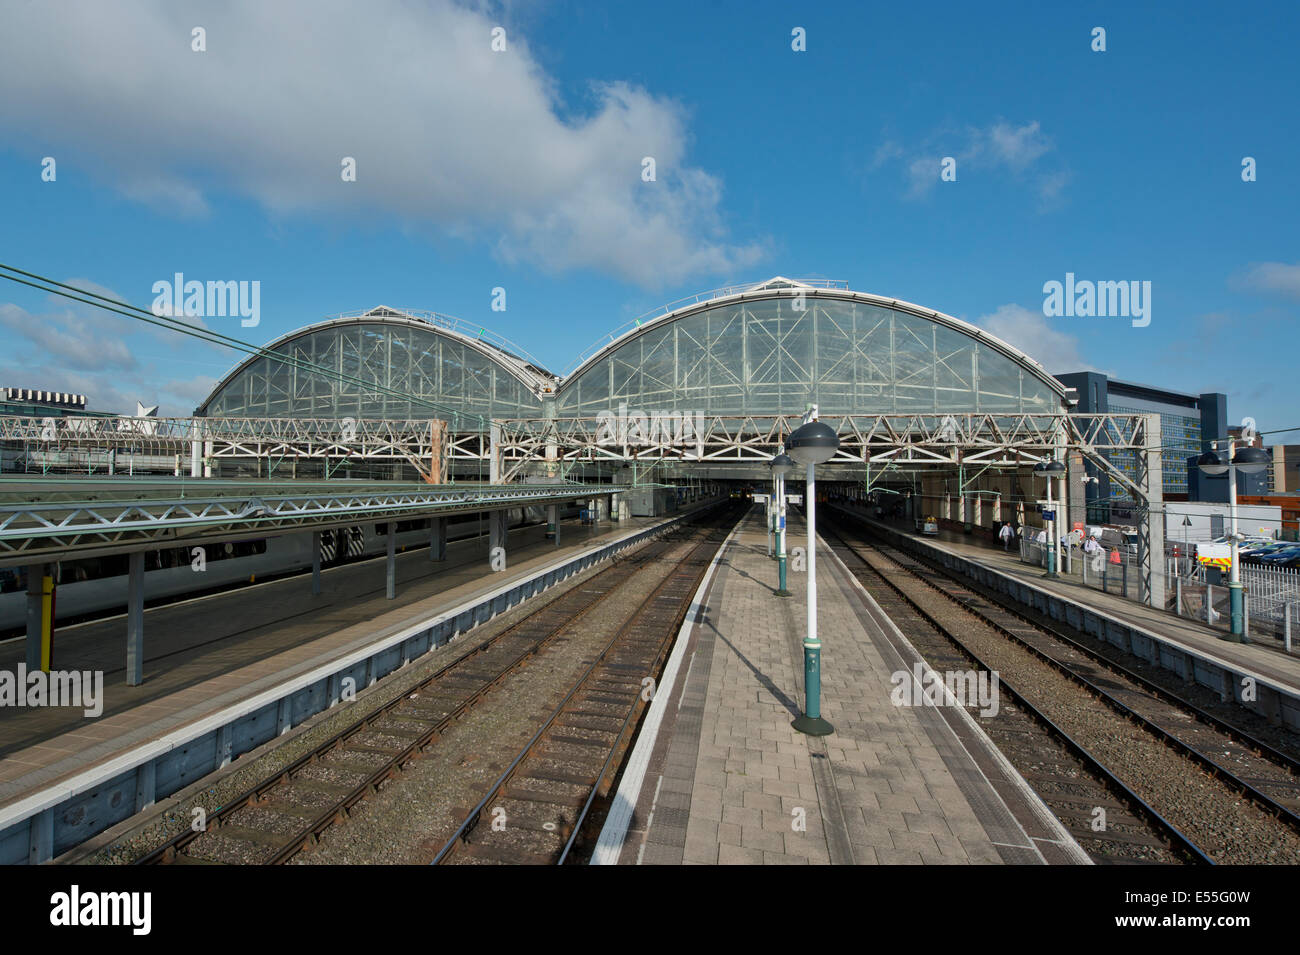 An empty Manchester Piccadilly Rail Station without any trains in service - Stock Image